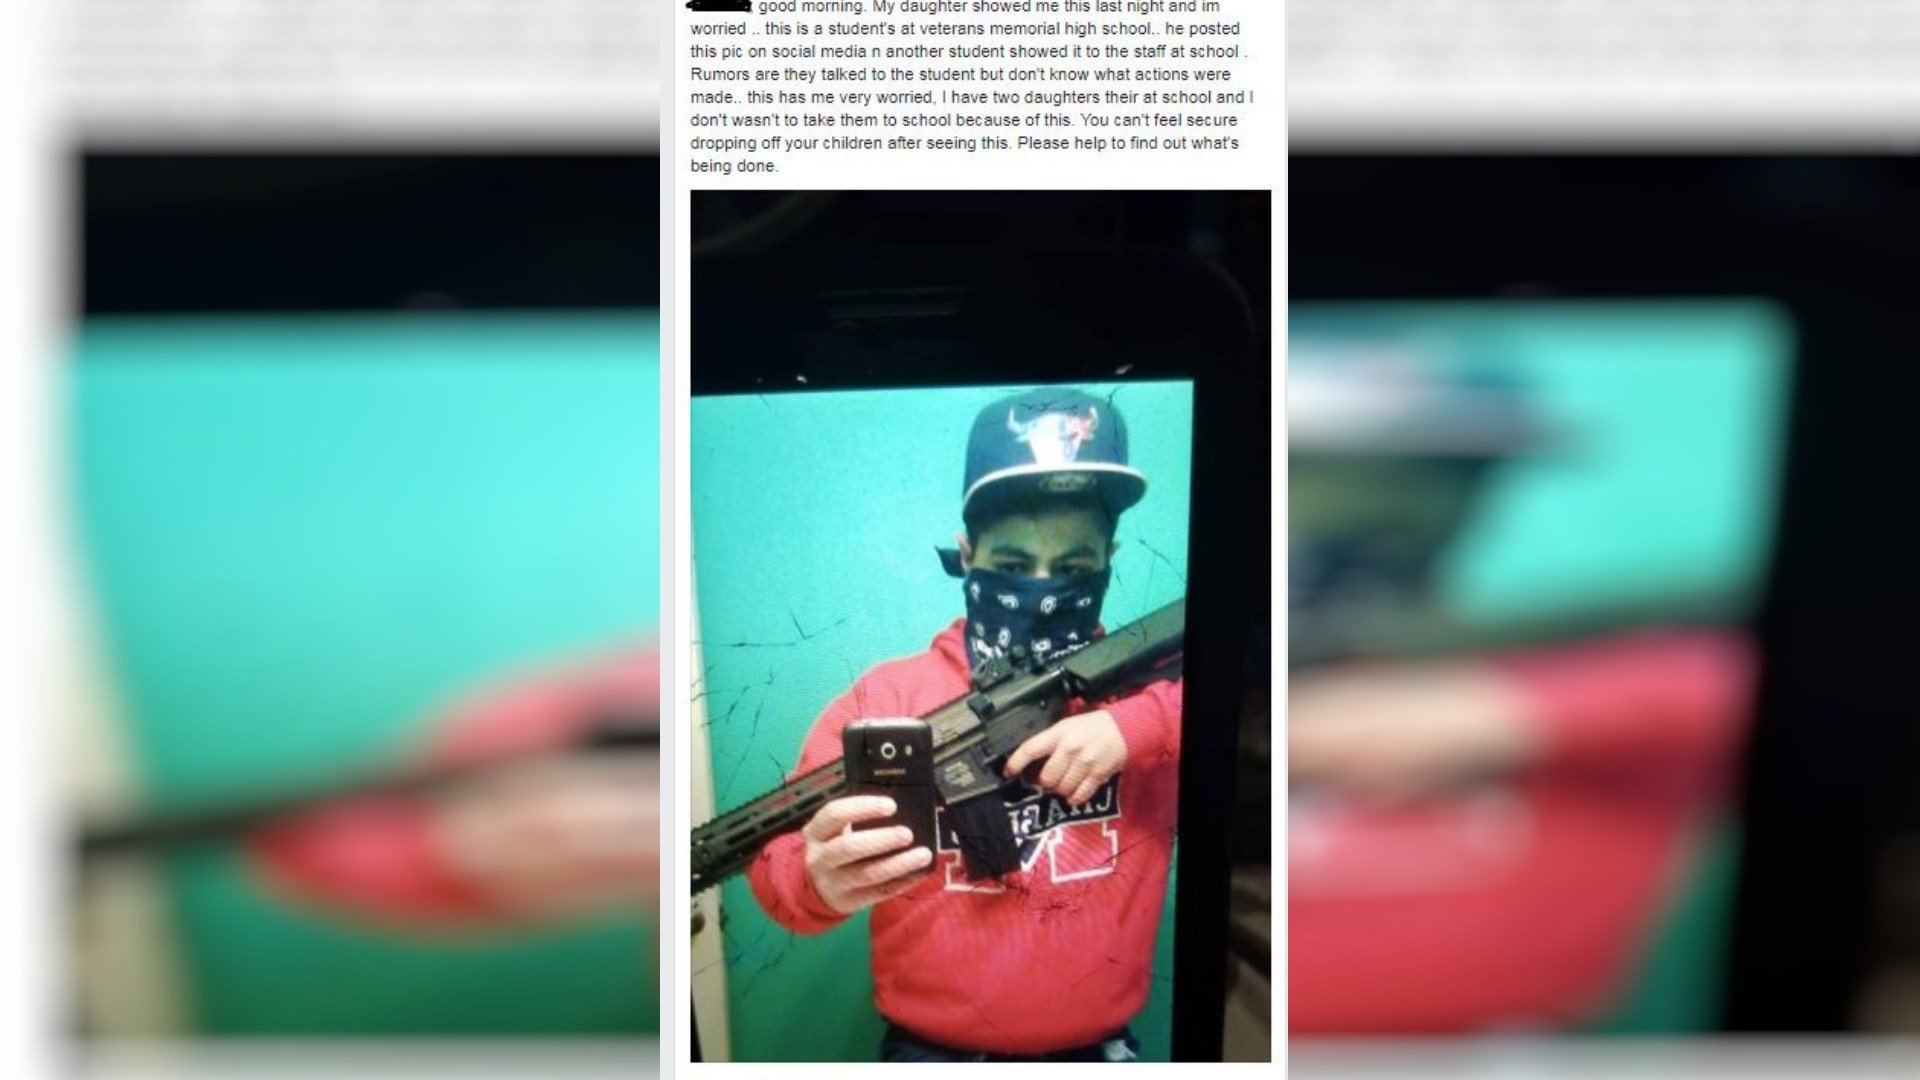 A Facebook post of a student holding a gun is causing confusion in Corpus Christi.